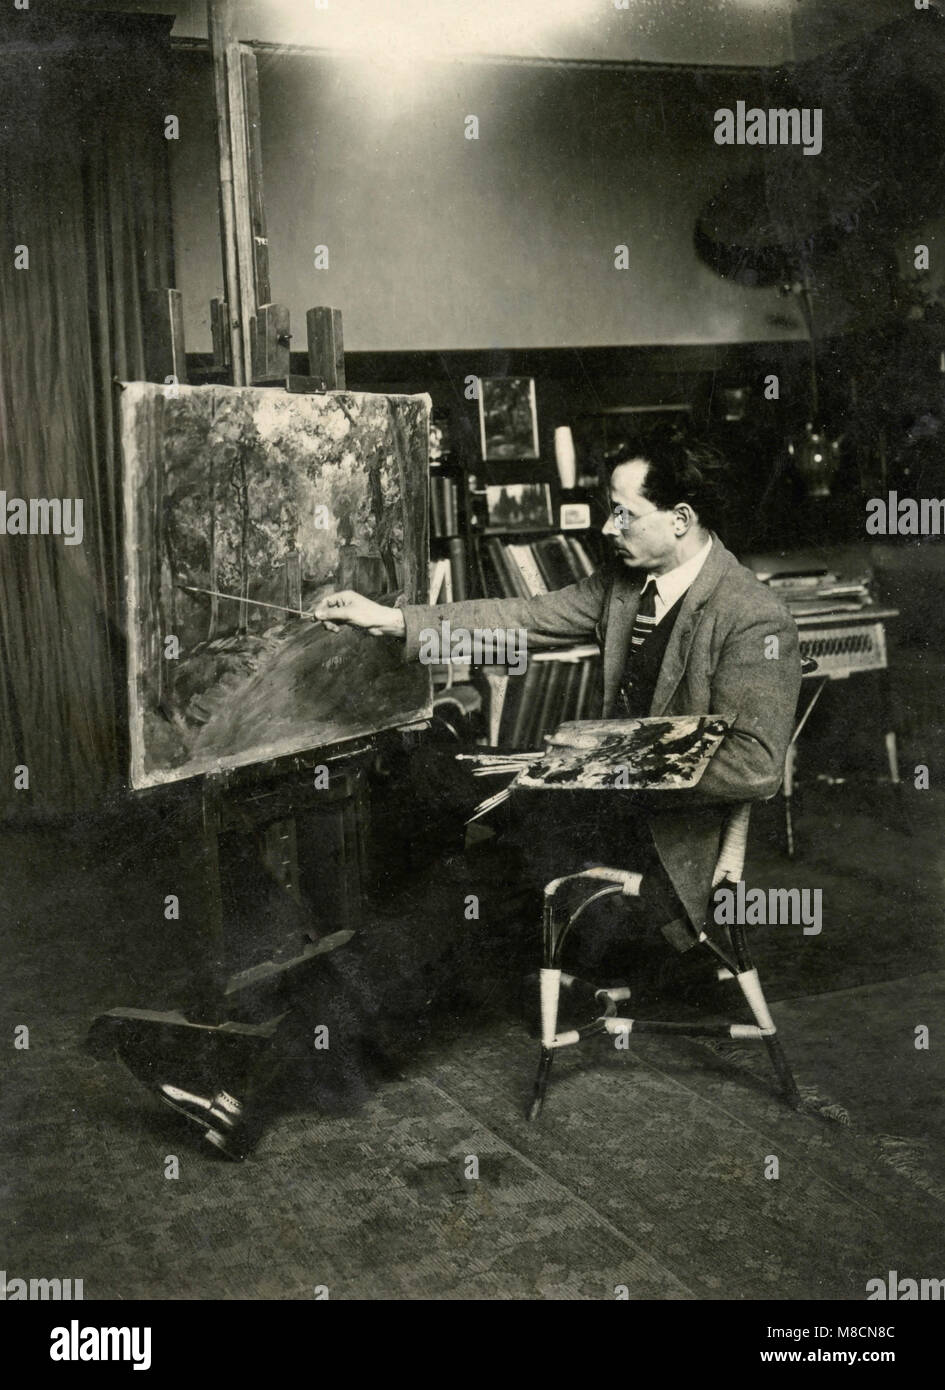 Painter working in his studio, Italy 1920s - Stock Image